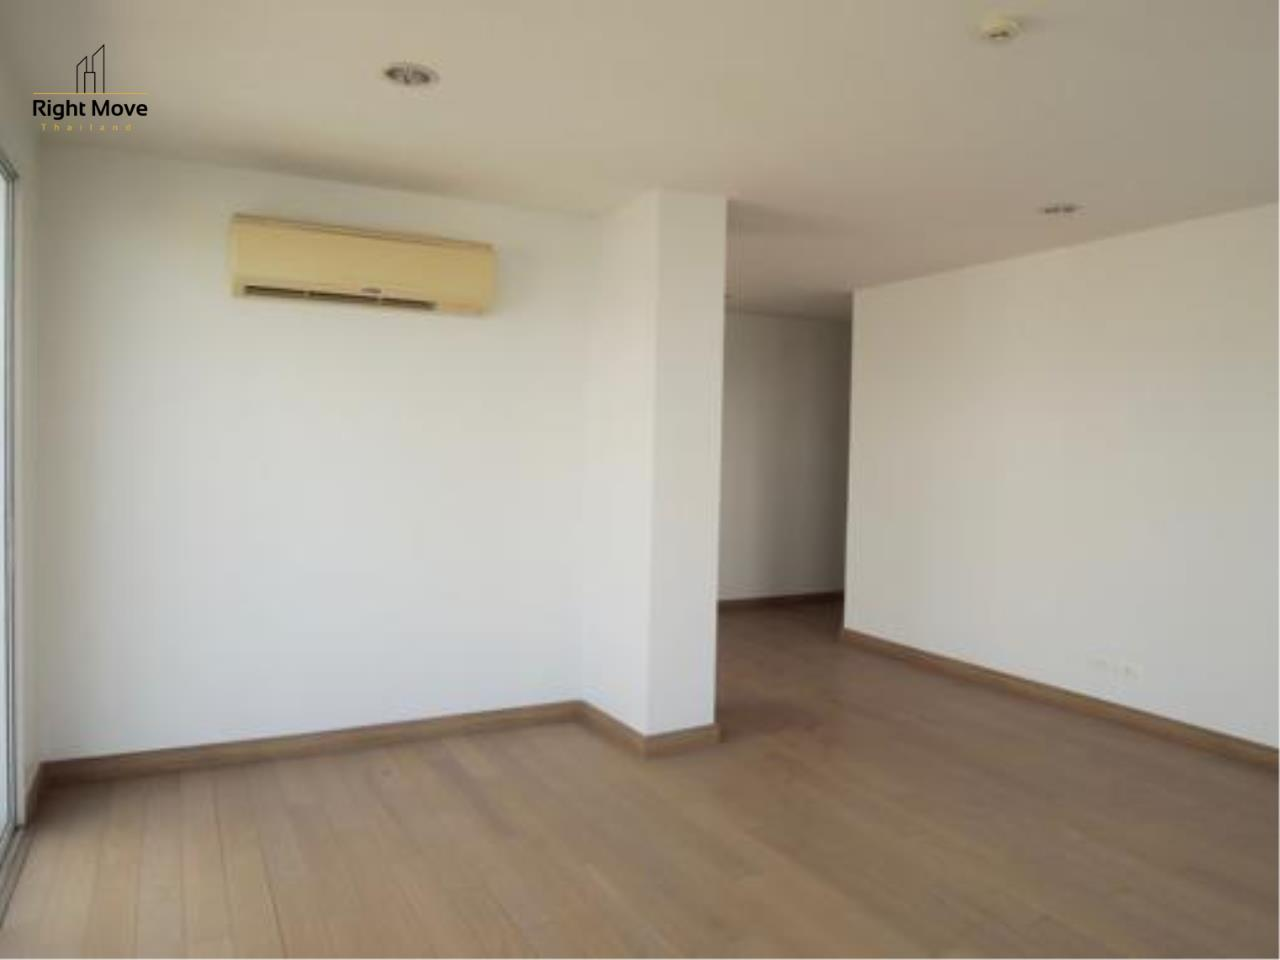 Right Move Thailand Agency's CS1818 The Rise Penthouse For Sale 27,500,000 THB 4 Bedrooms 297.47 Sqm 4